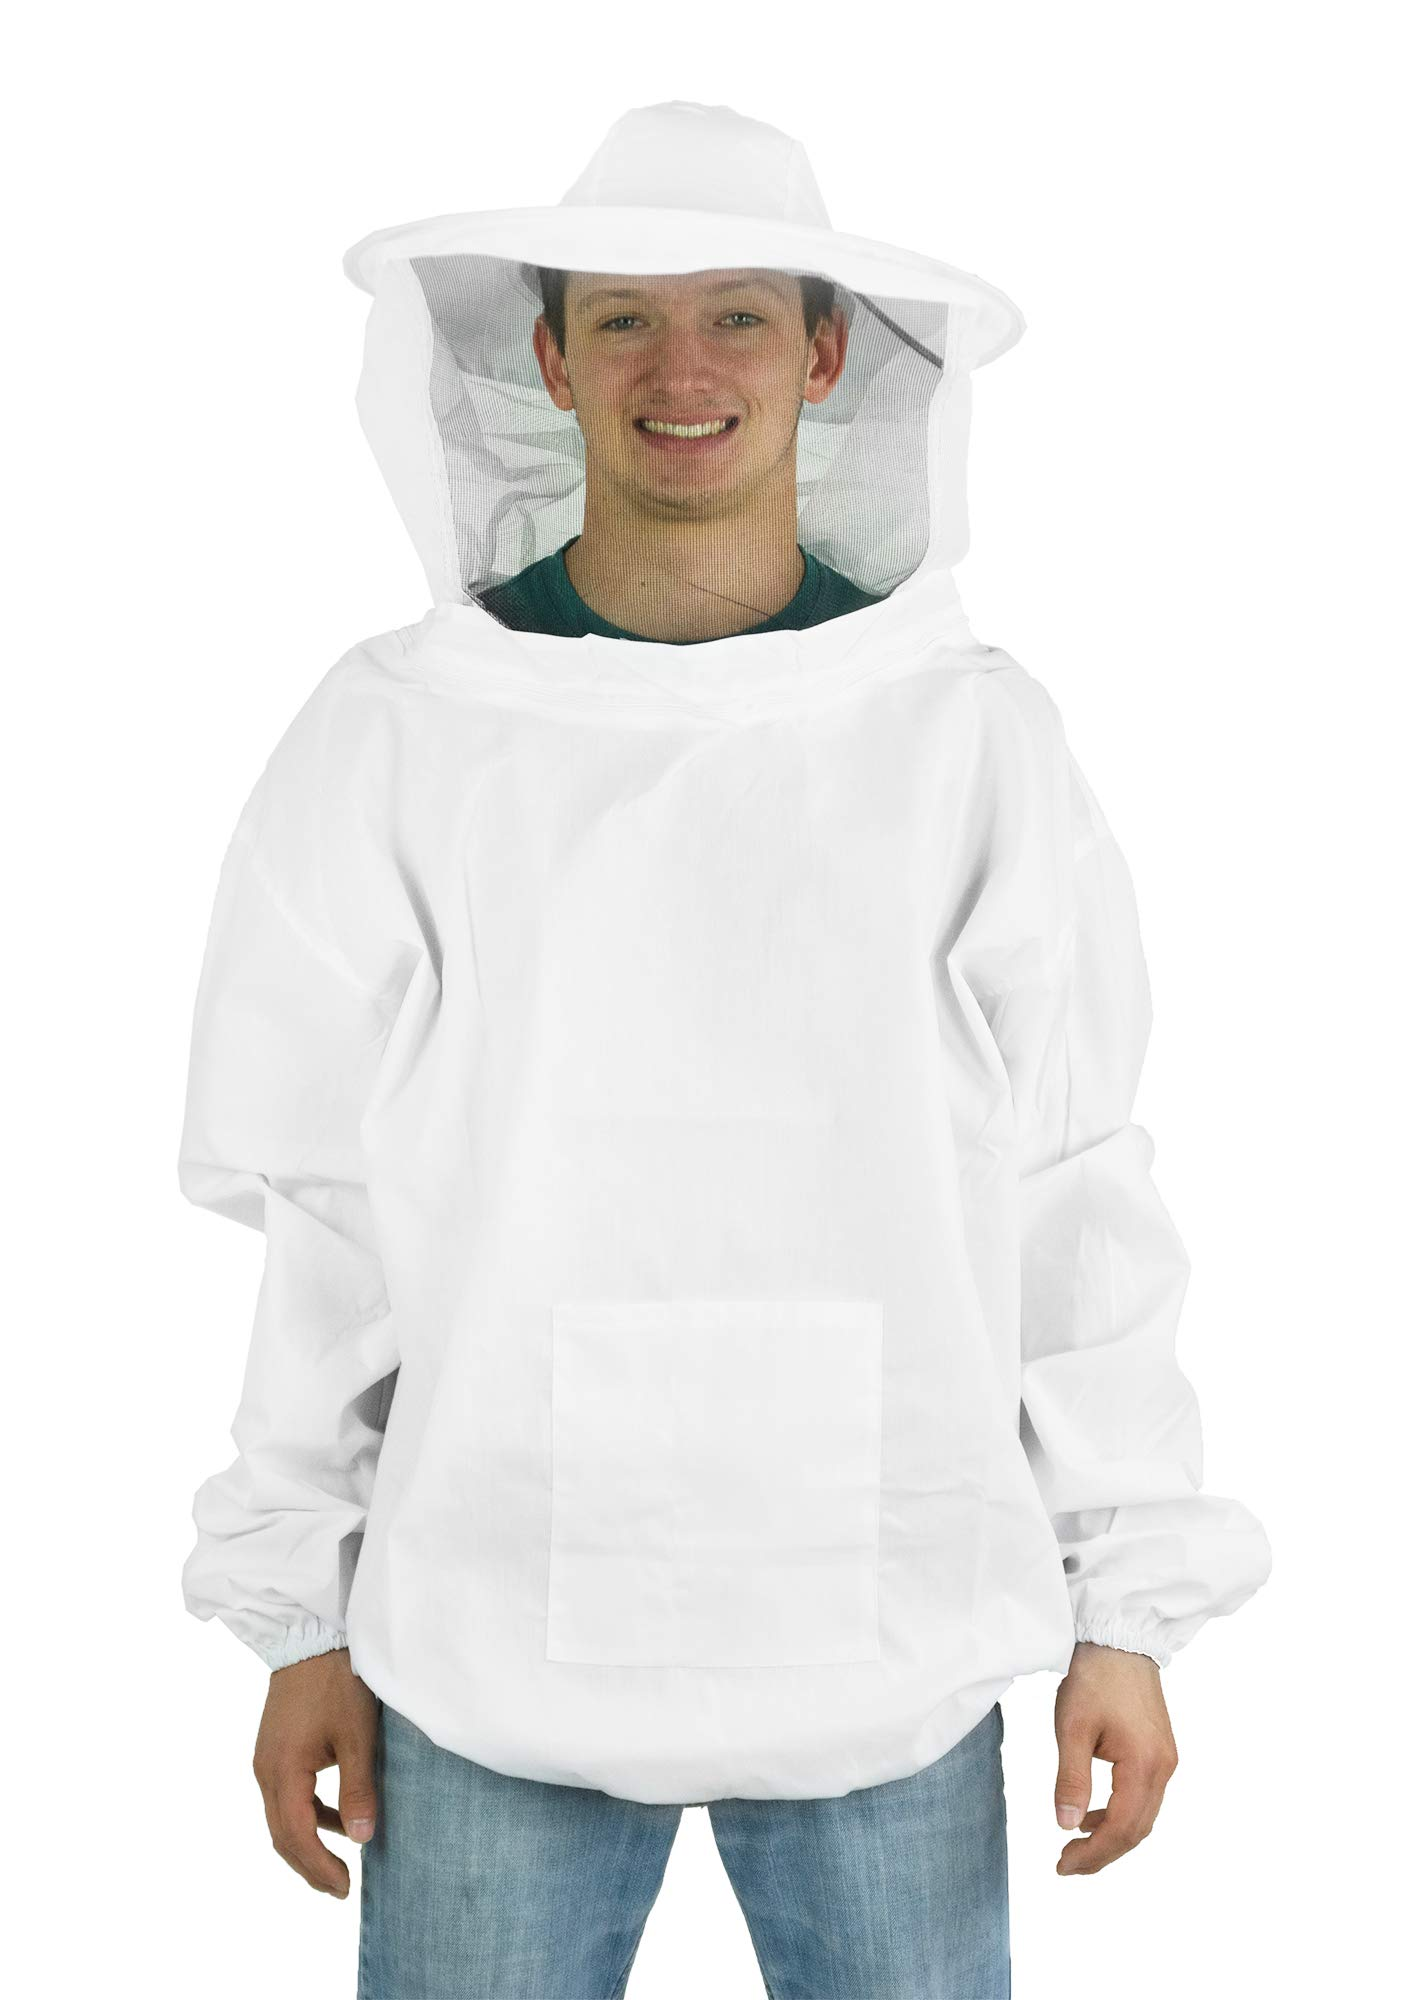 VIVO Professional White XL/Extra Large Beekeeping/Bee Keeping Suit, Jacket, Pull Over, Smock with a Veil (BEE-V105XL)